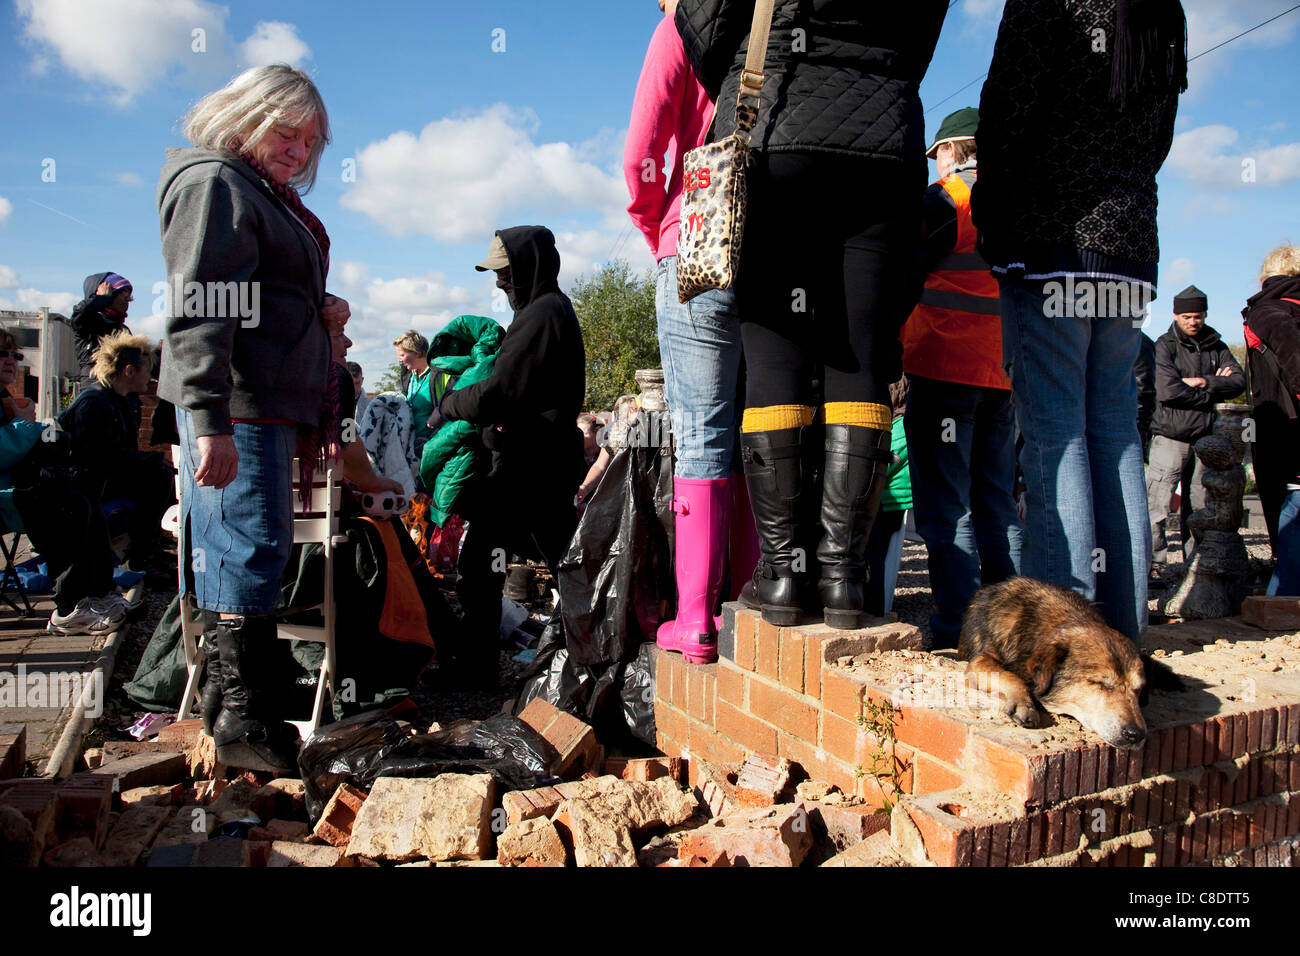 Dale Farm site prior to eviction, a Romany Gypsy and Irish Traveller site in Crays Hill, Essex, UK - Stock Image